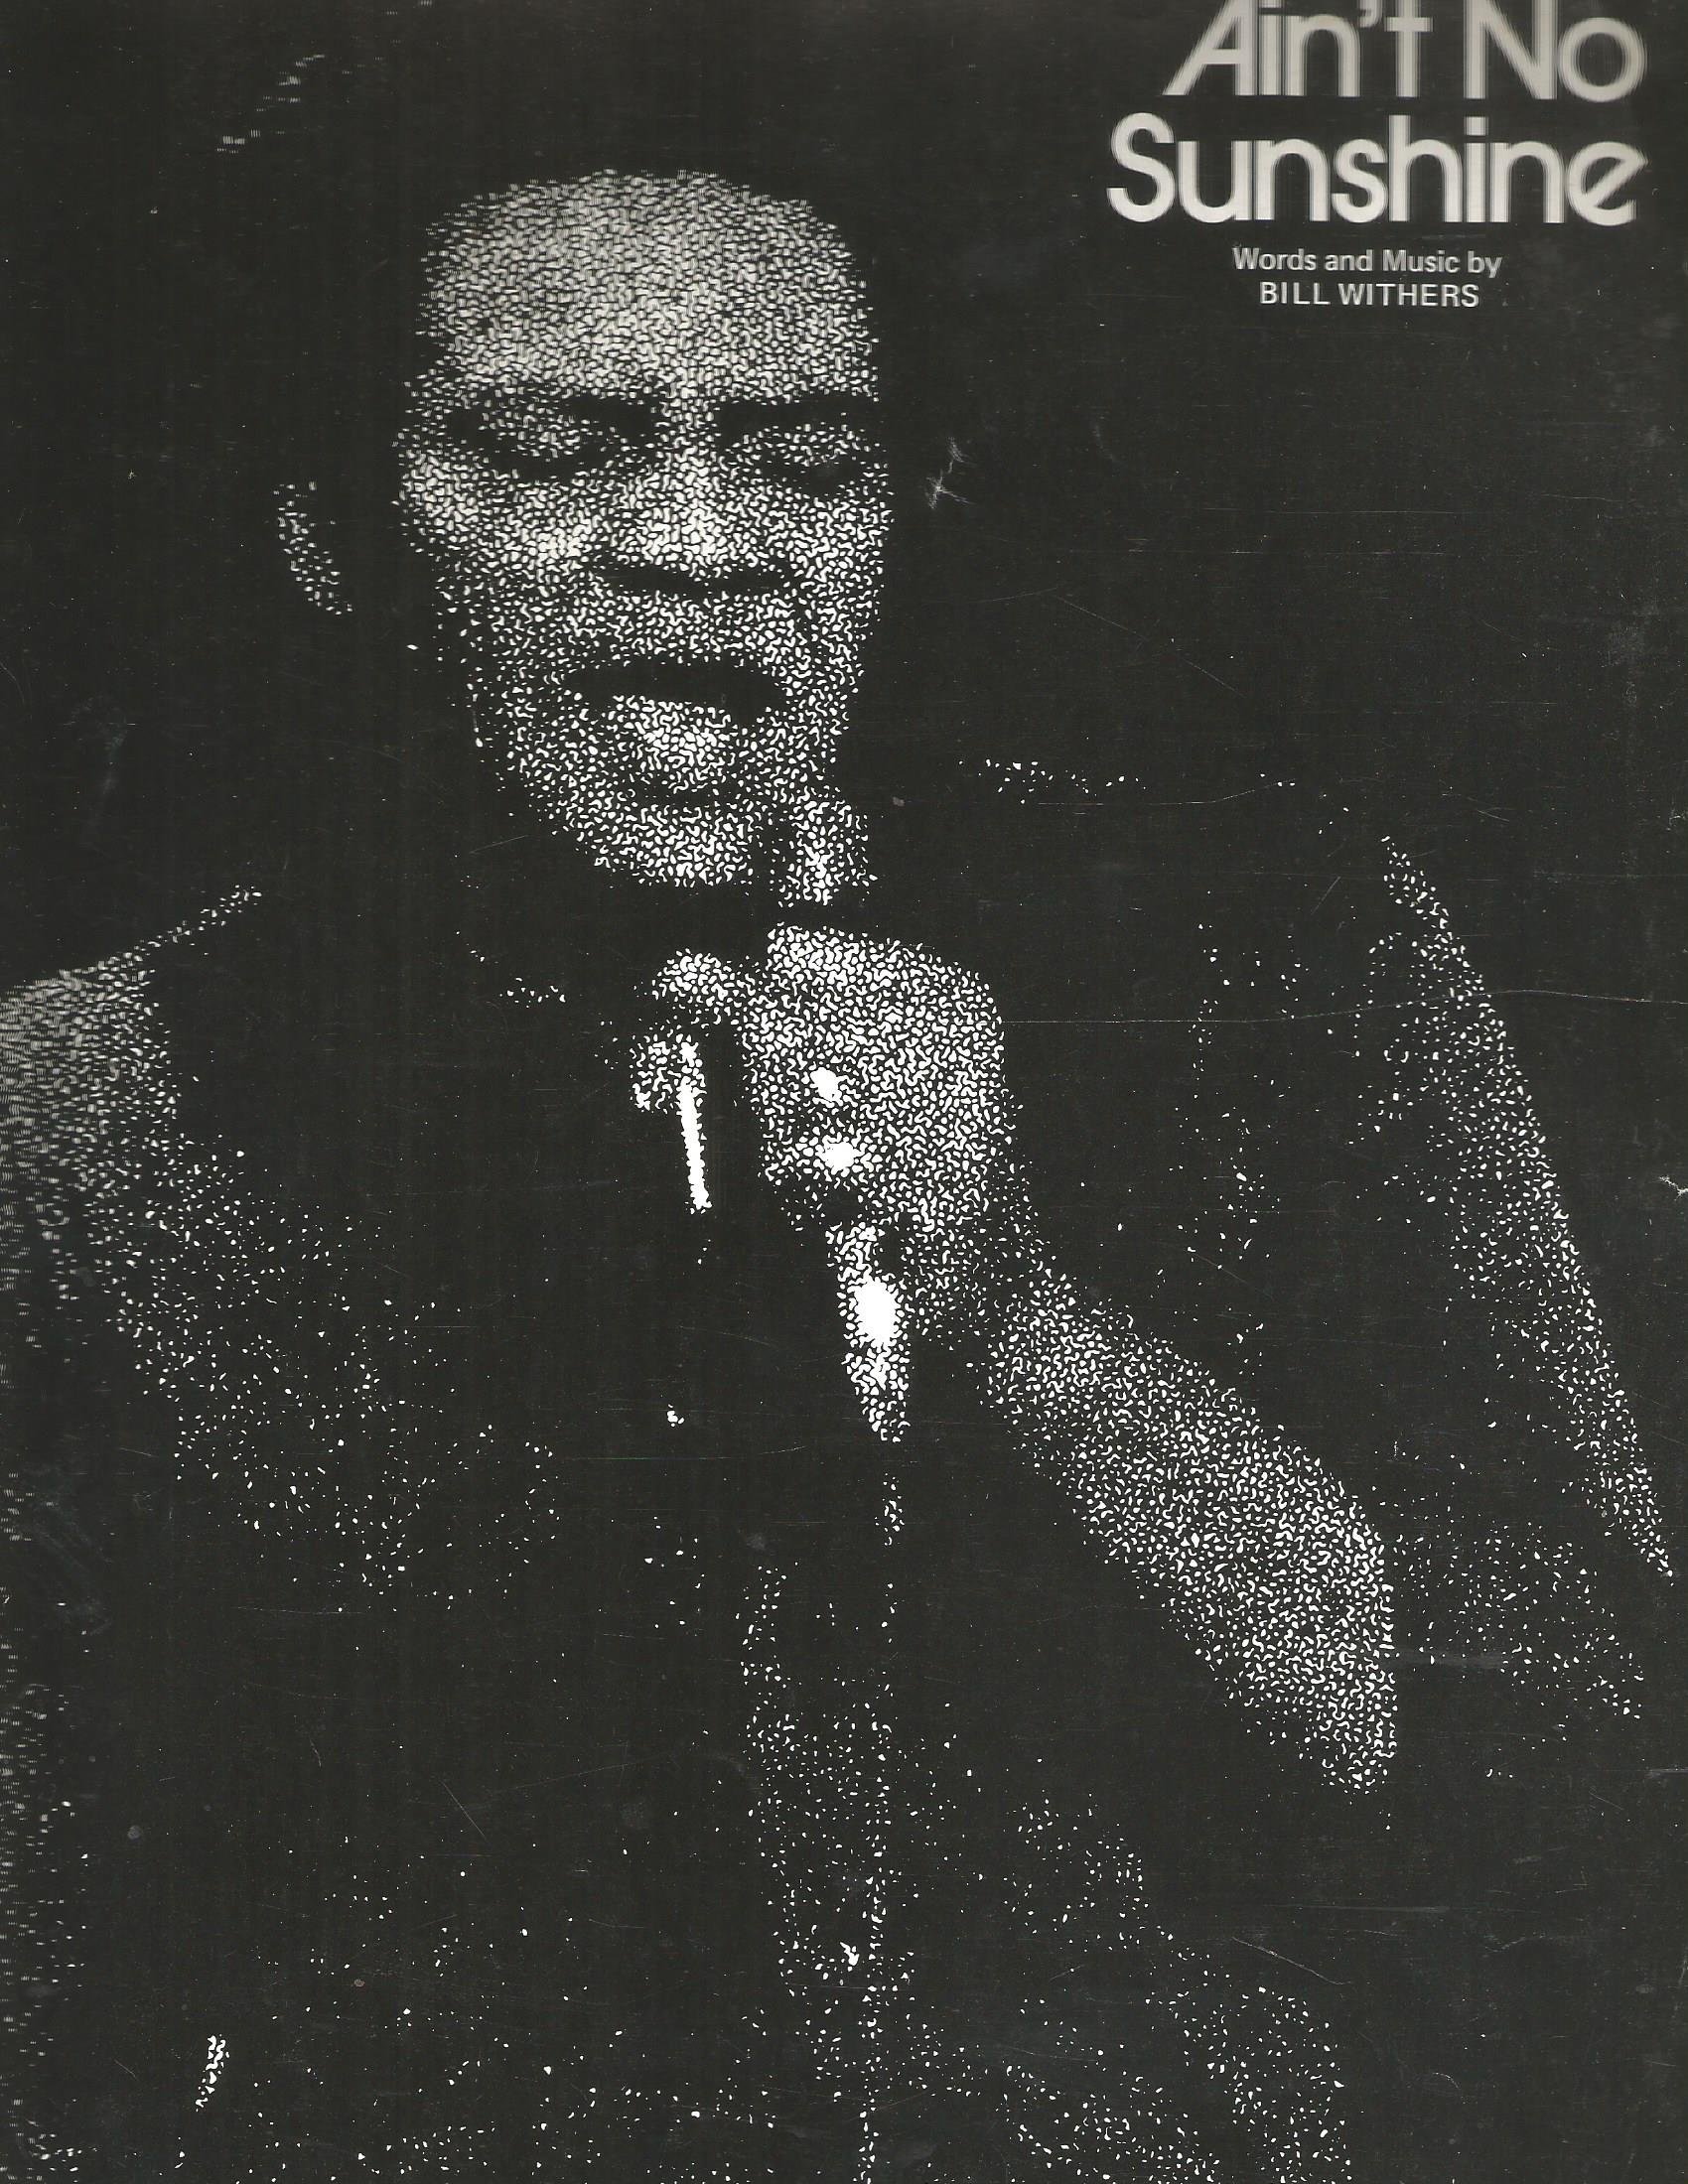 Ain T No Sunshine Vocal Edition With Words Piano Chords As Recorded By Bill Withers Bill Withers Amazon Com Books Ain't no sunshine when she's em gone, and this house just ain't no dm home, anytime she goes am away. ain t no sunshine vocal edition with